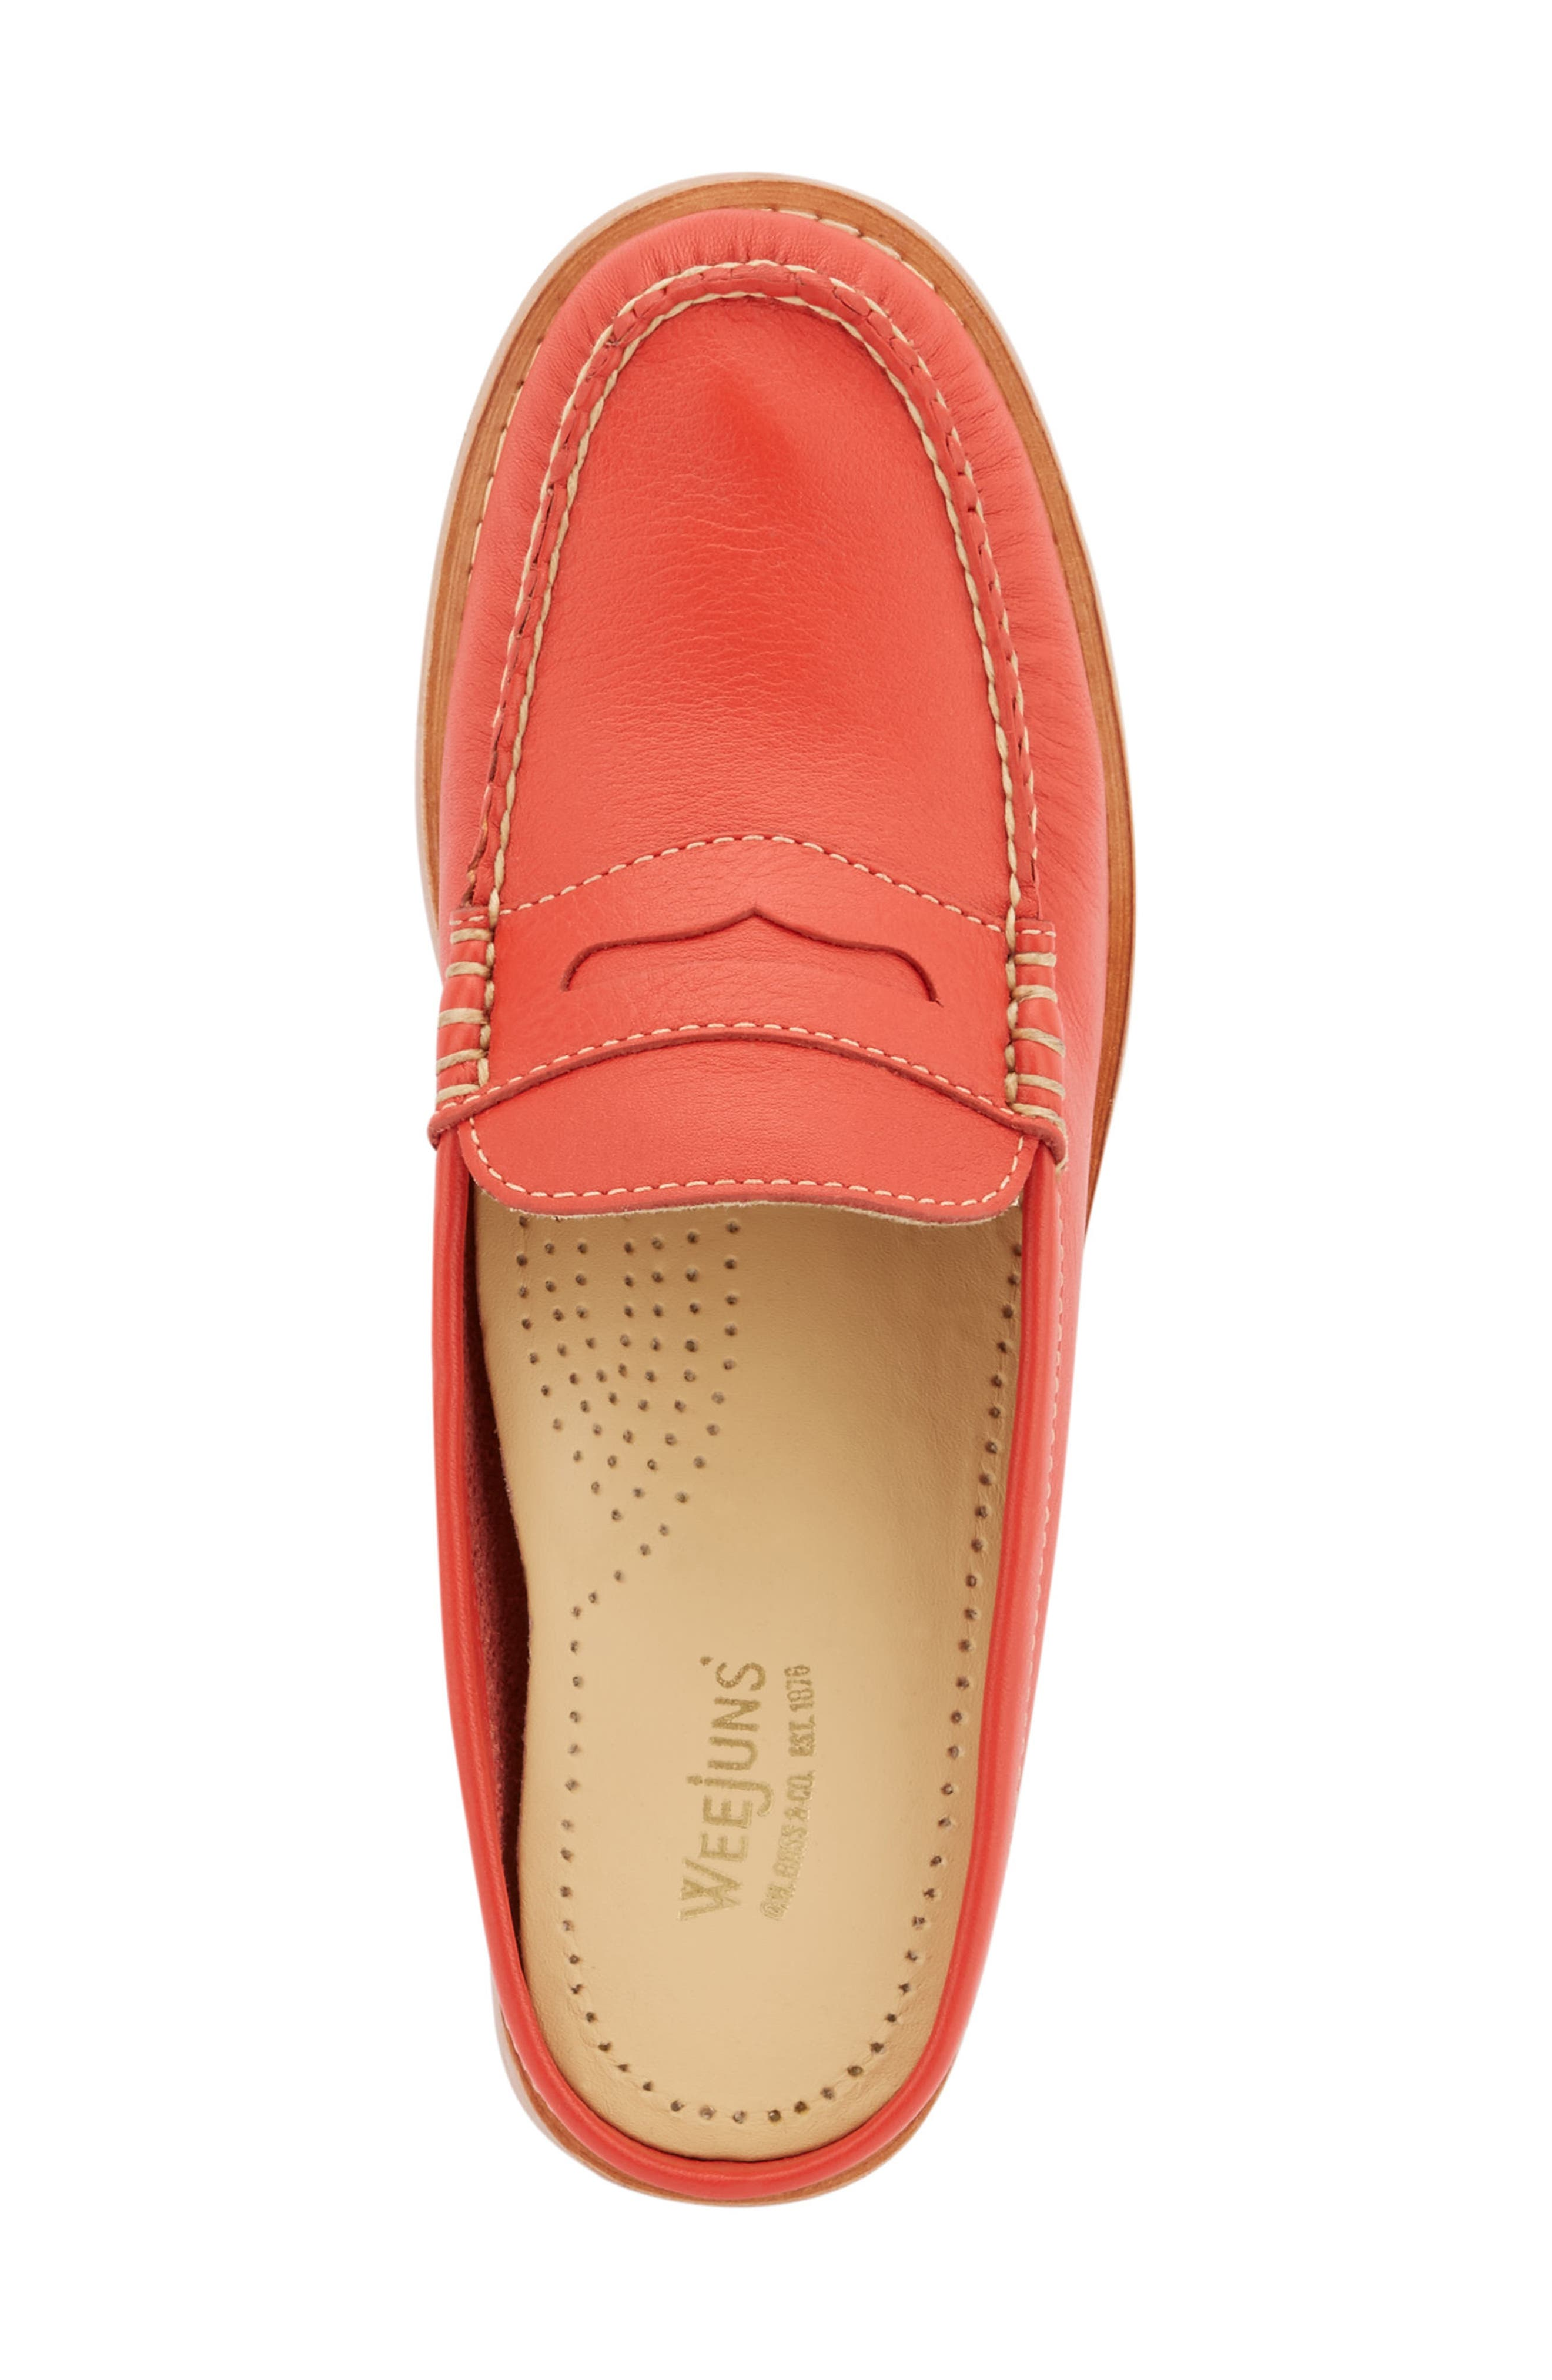 Wynn Loafer Mule,                             Alternate thumbnail 117, color,